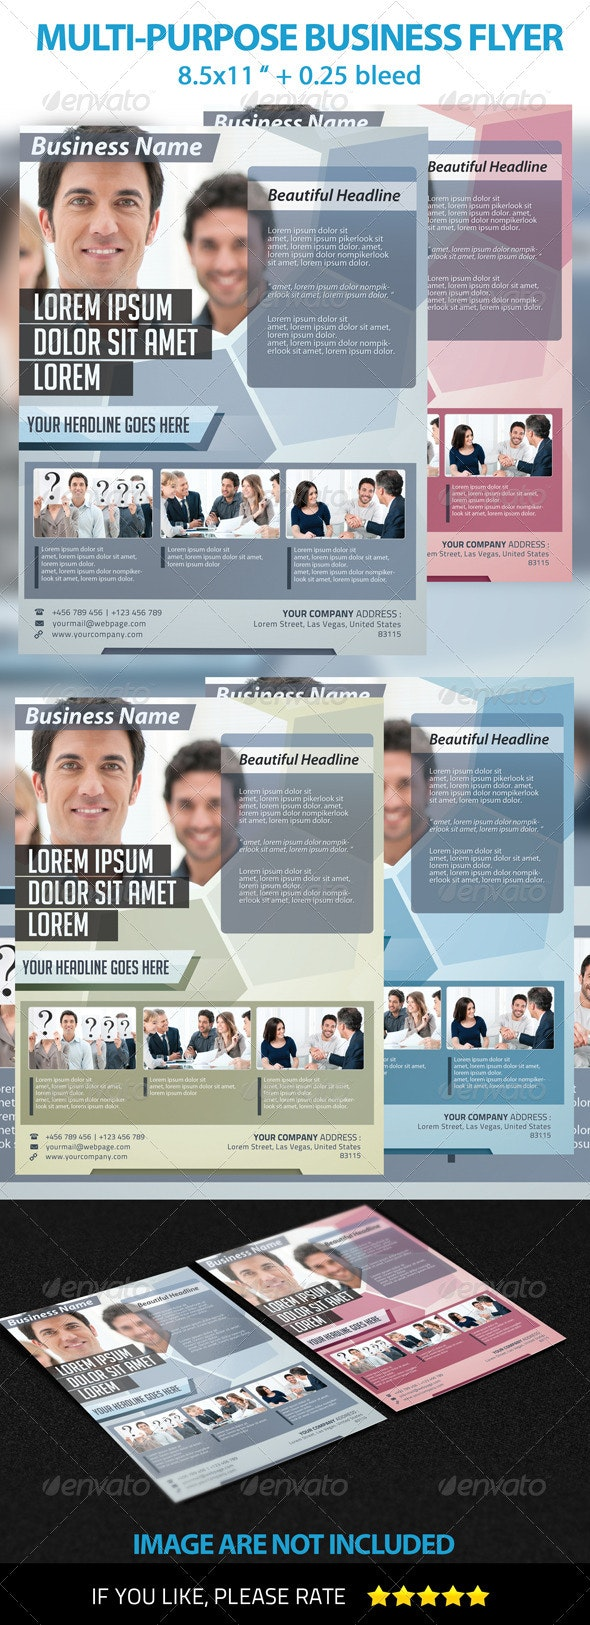 Multi-Purpose Business Flyer Template - Commerce Flyers